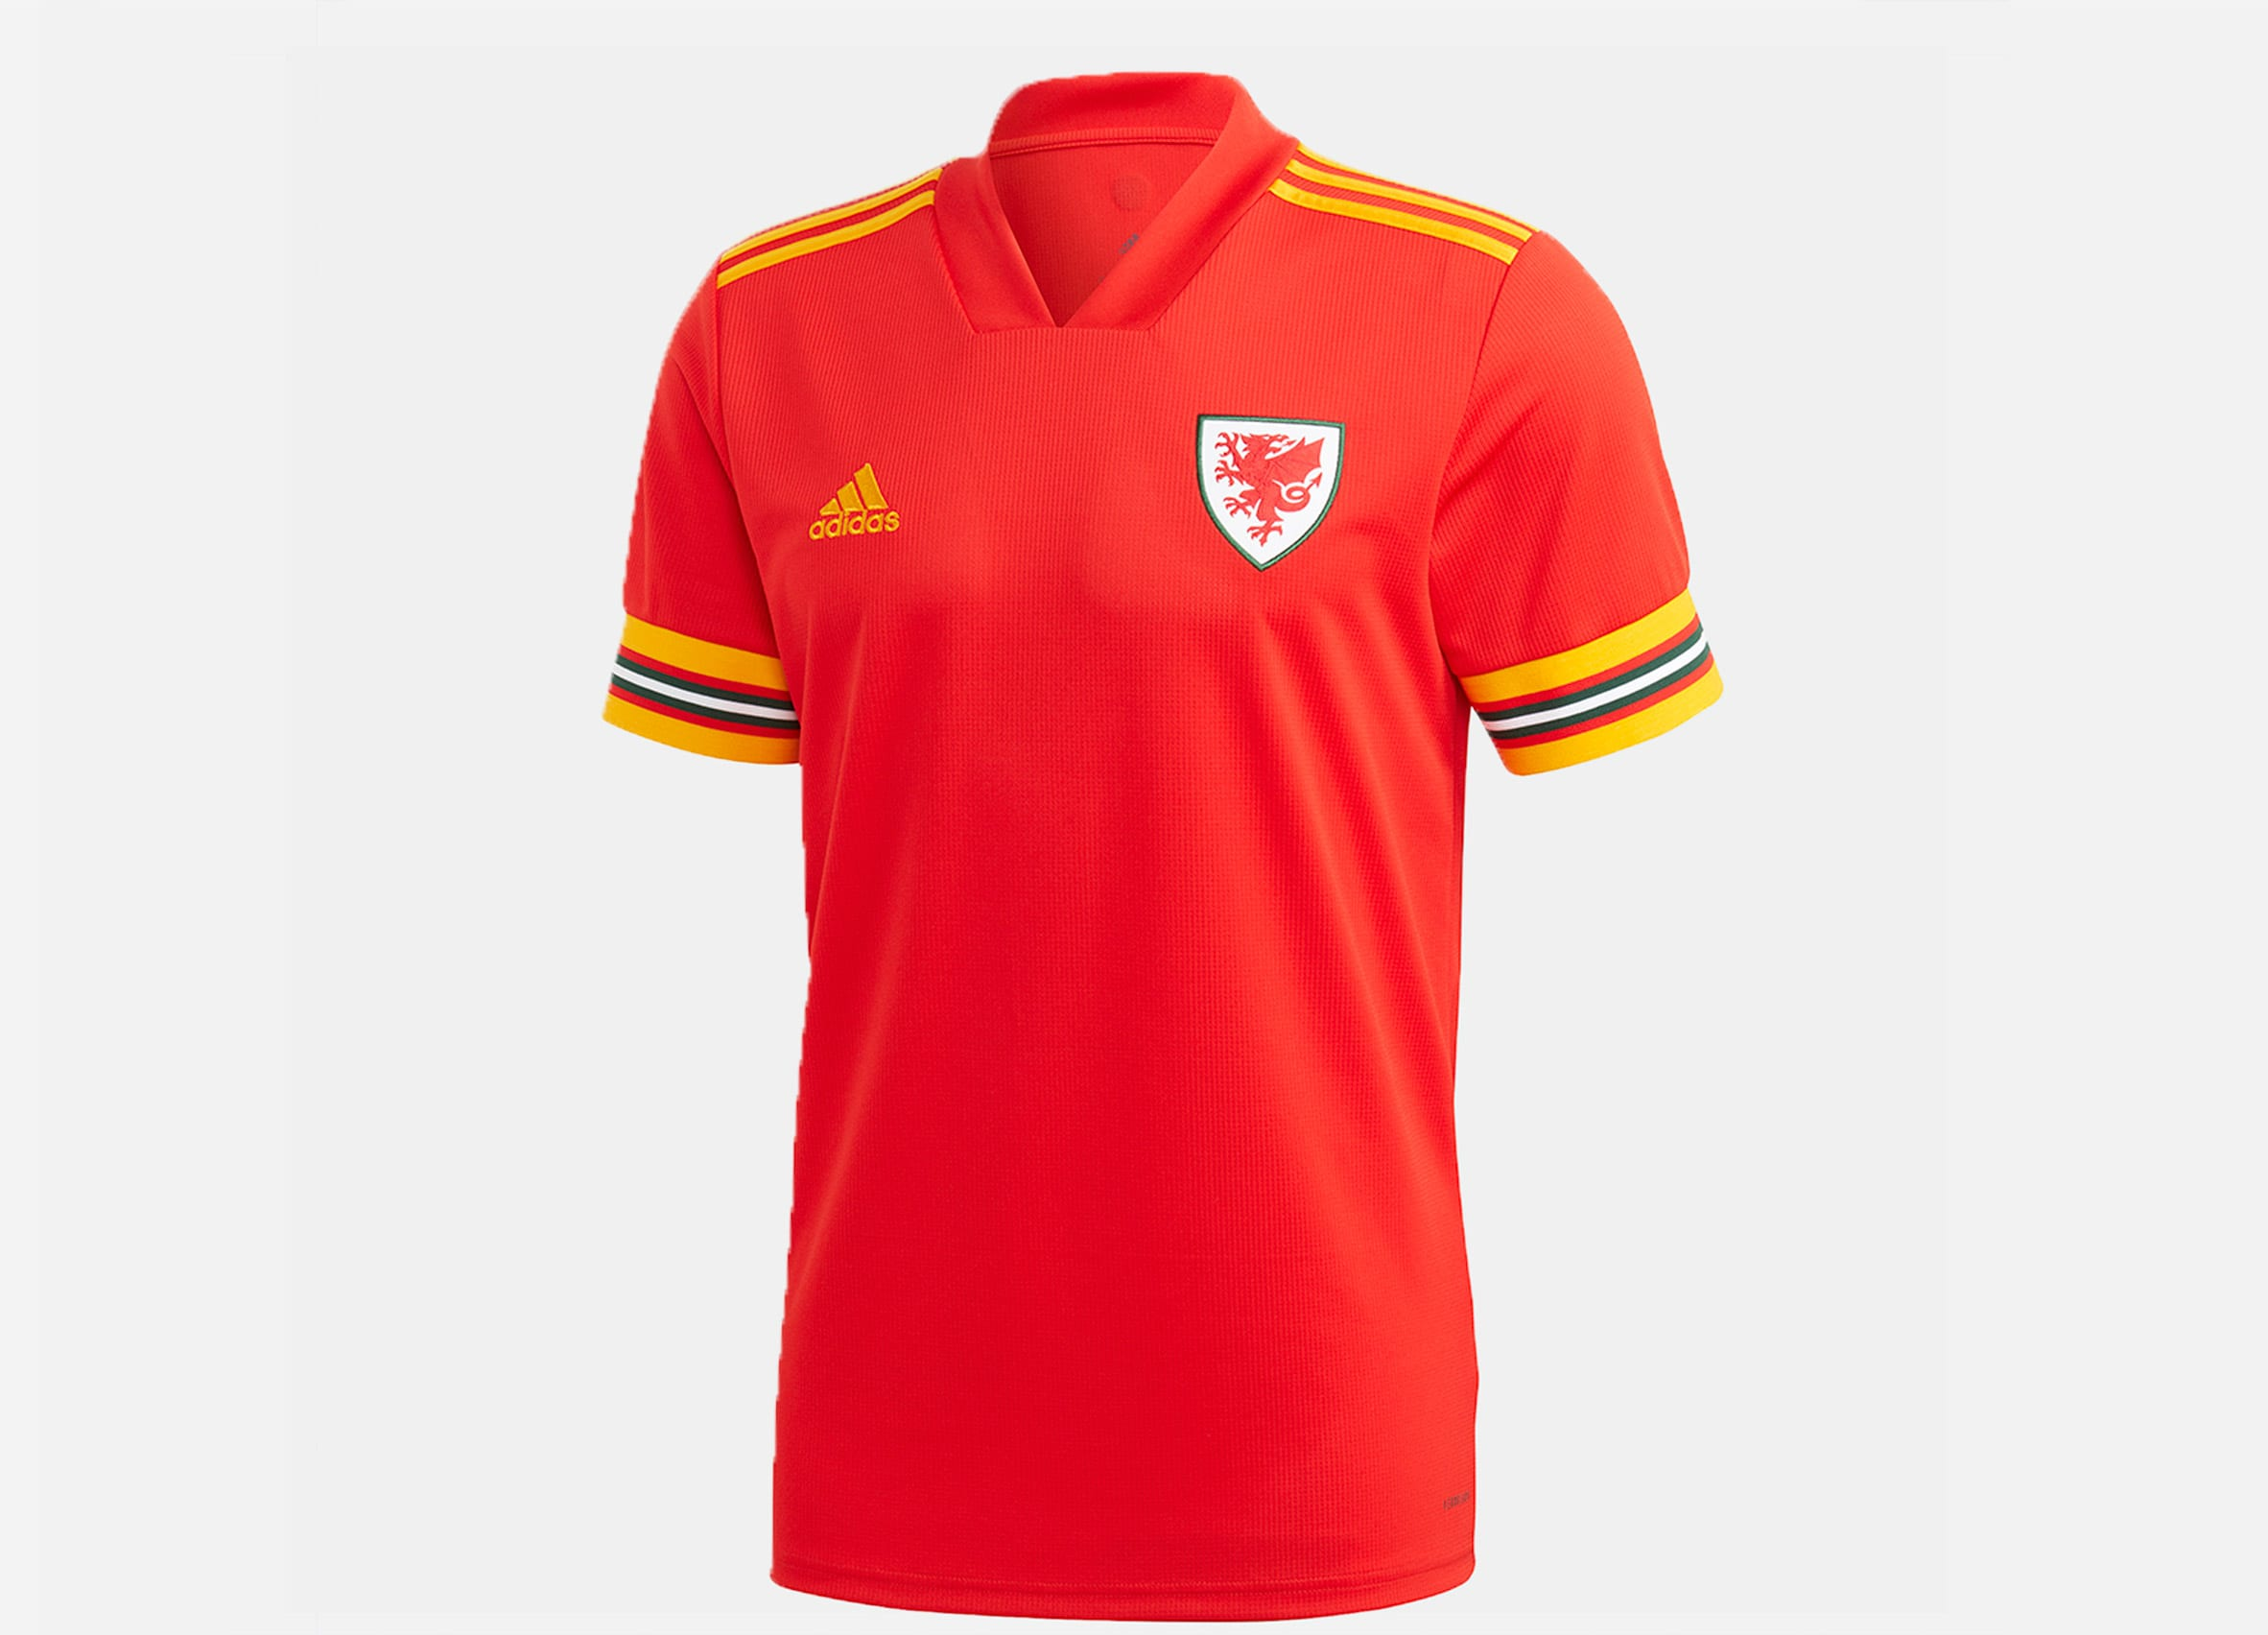 Wales by Adidas